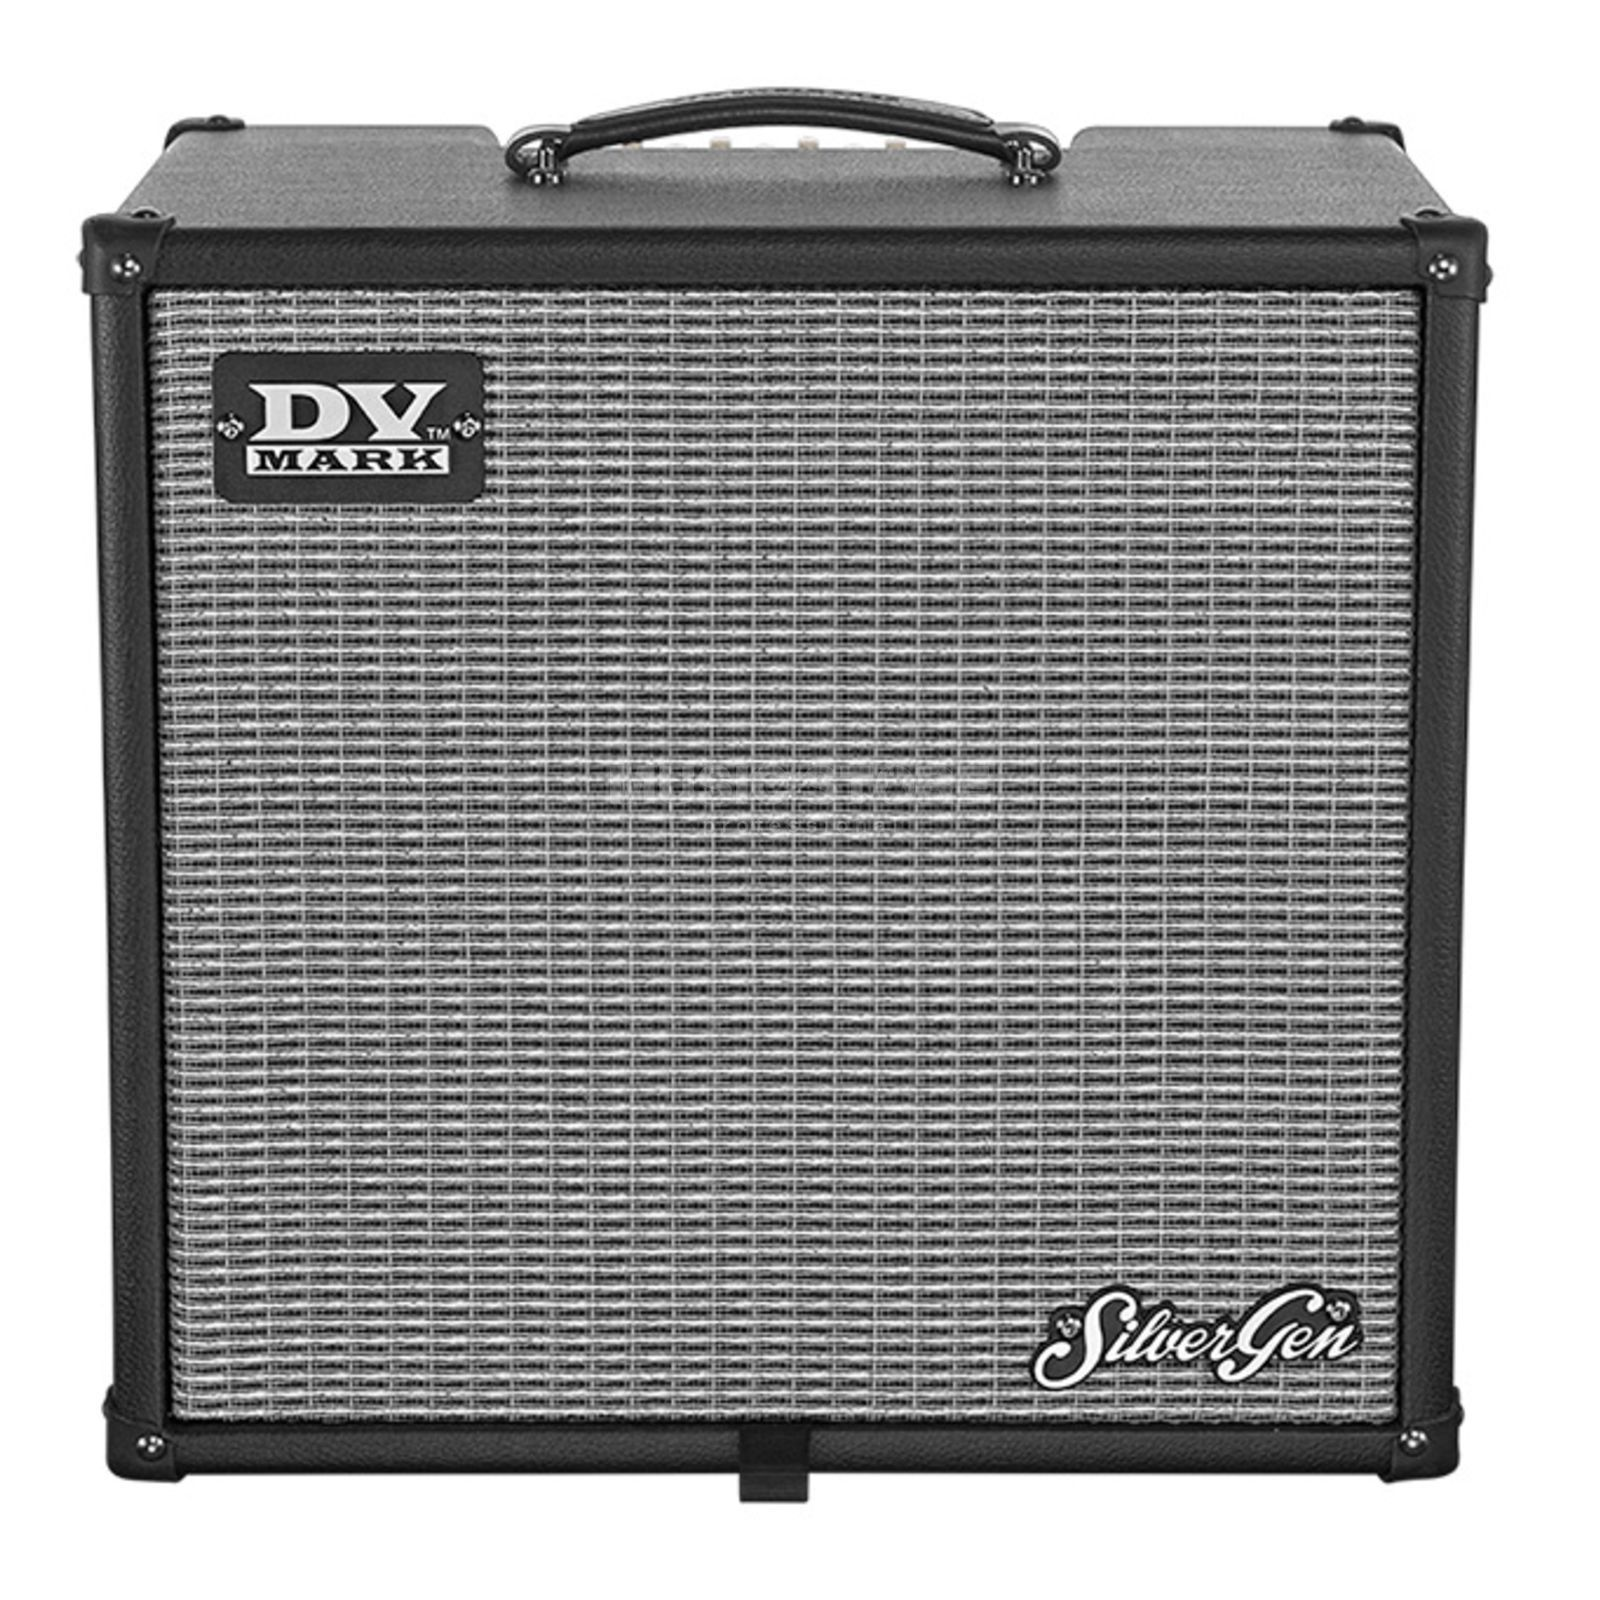 DV Mark DVC Guitar Friend 12 Ultra Light Combo Produktbild